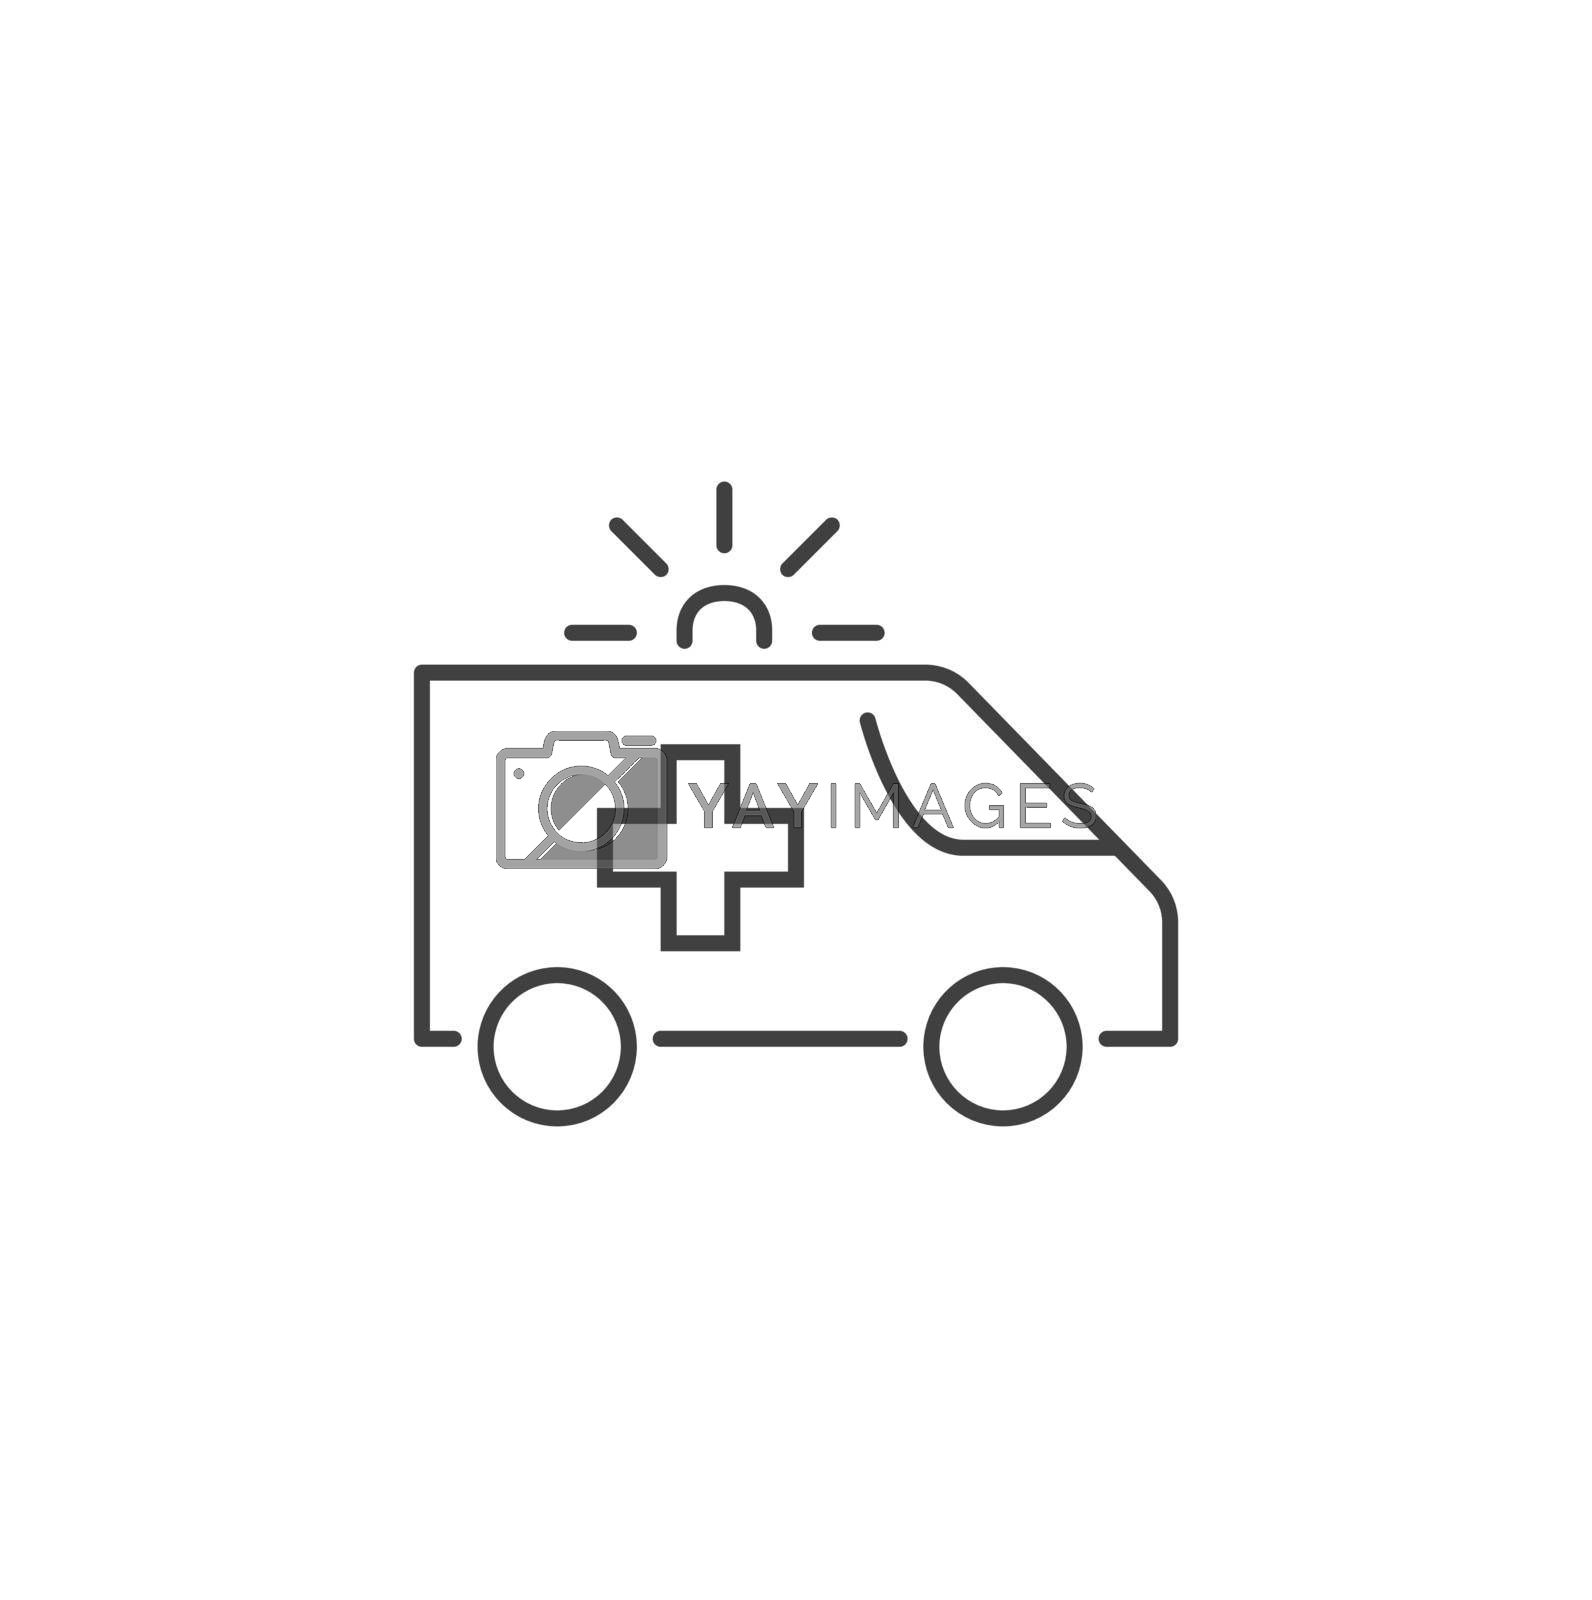 Ambulance Car Thin Line Vector Icon. Flat Icon Isolated on the Black Background. Editable Stroke EPS file. Vector illustration.